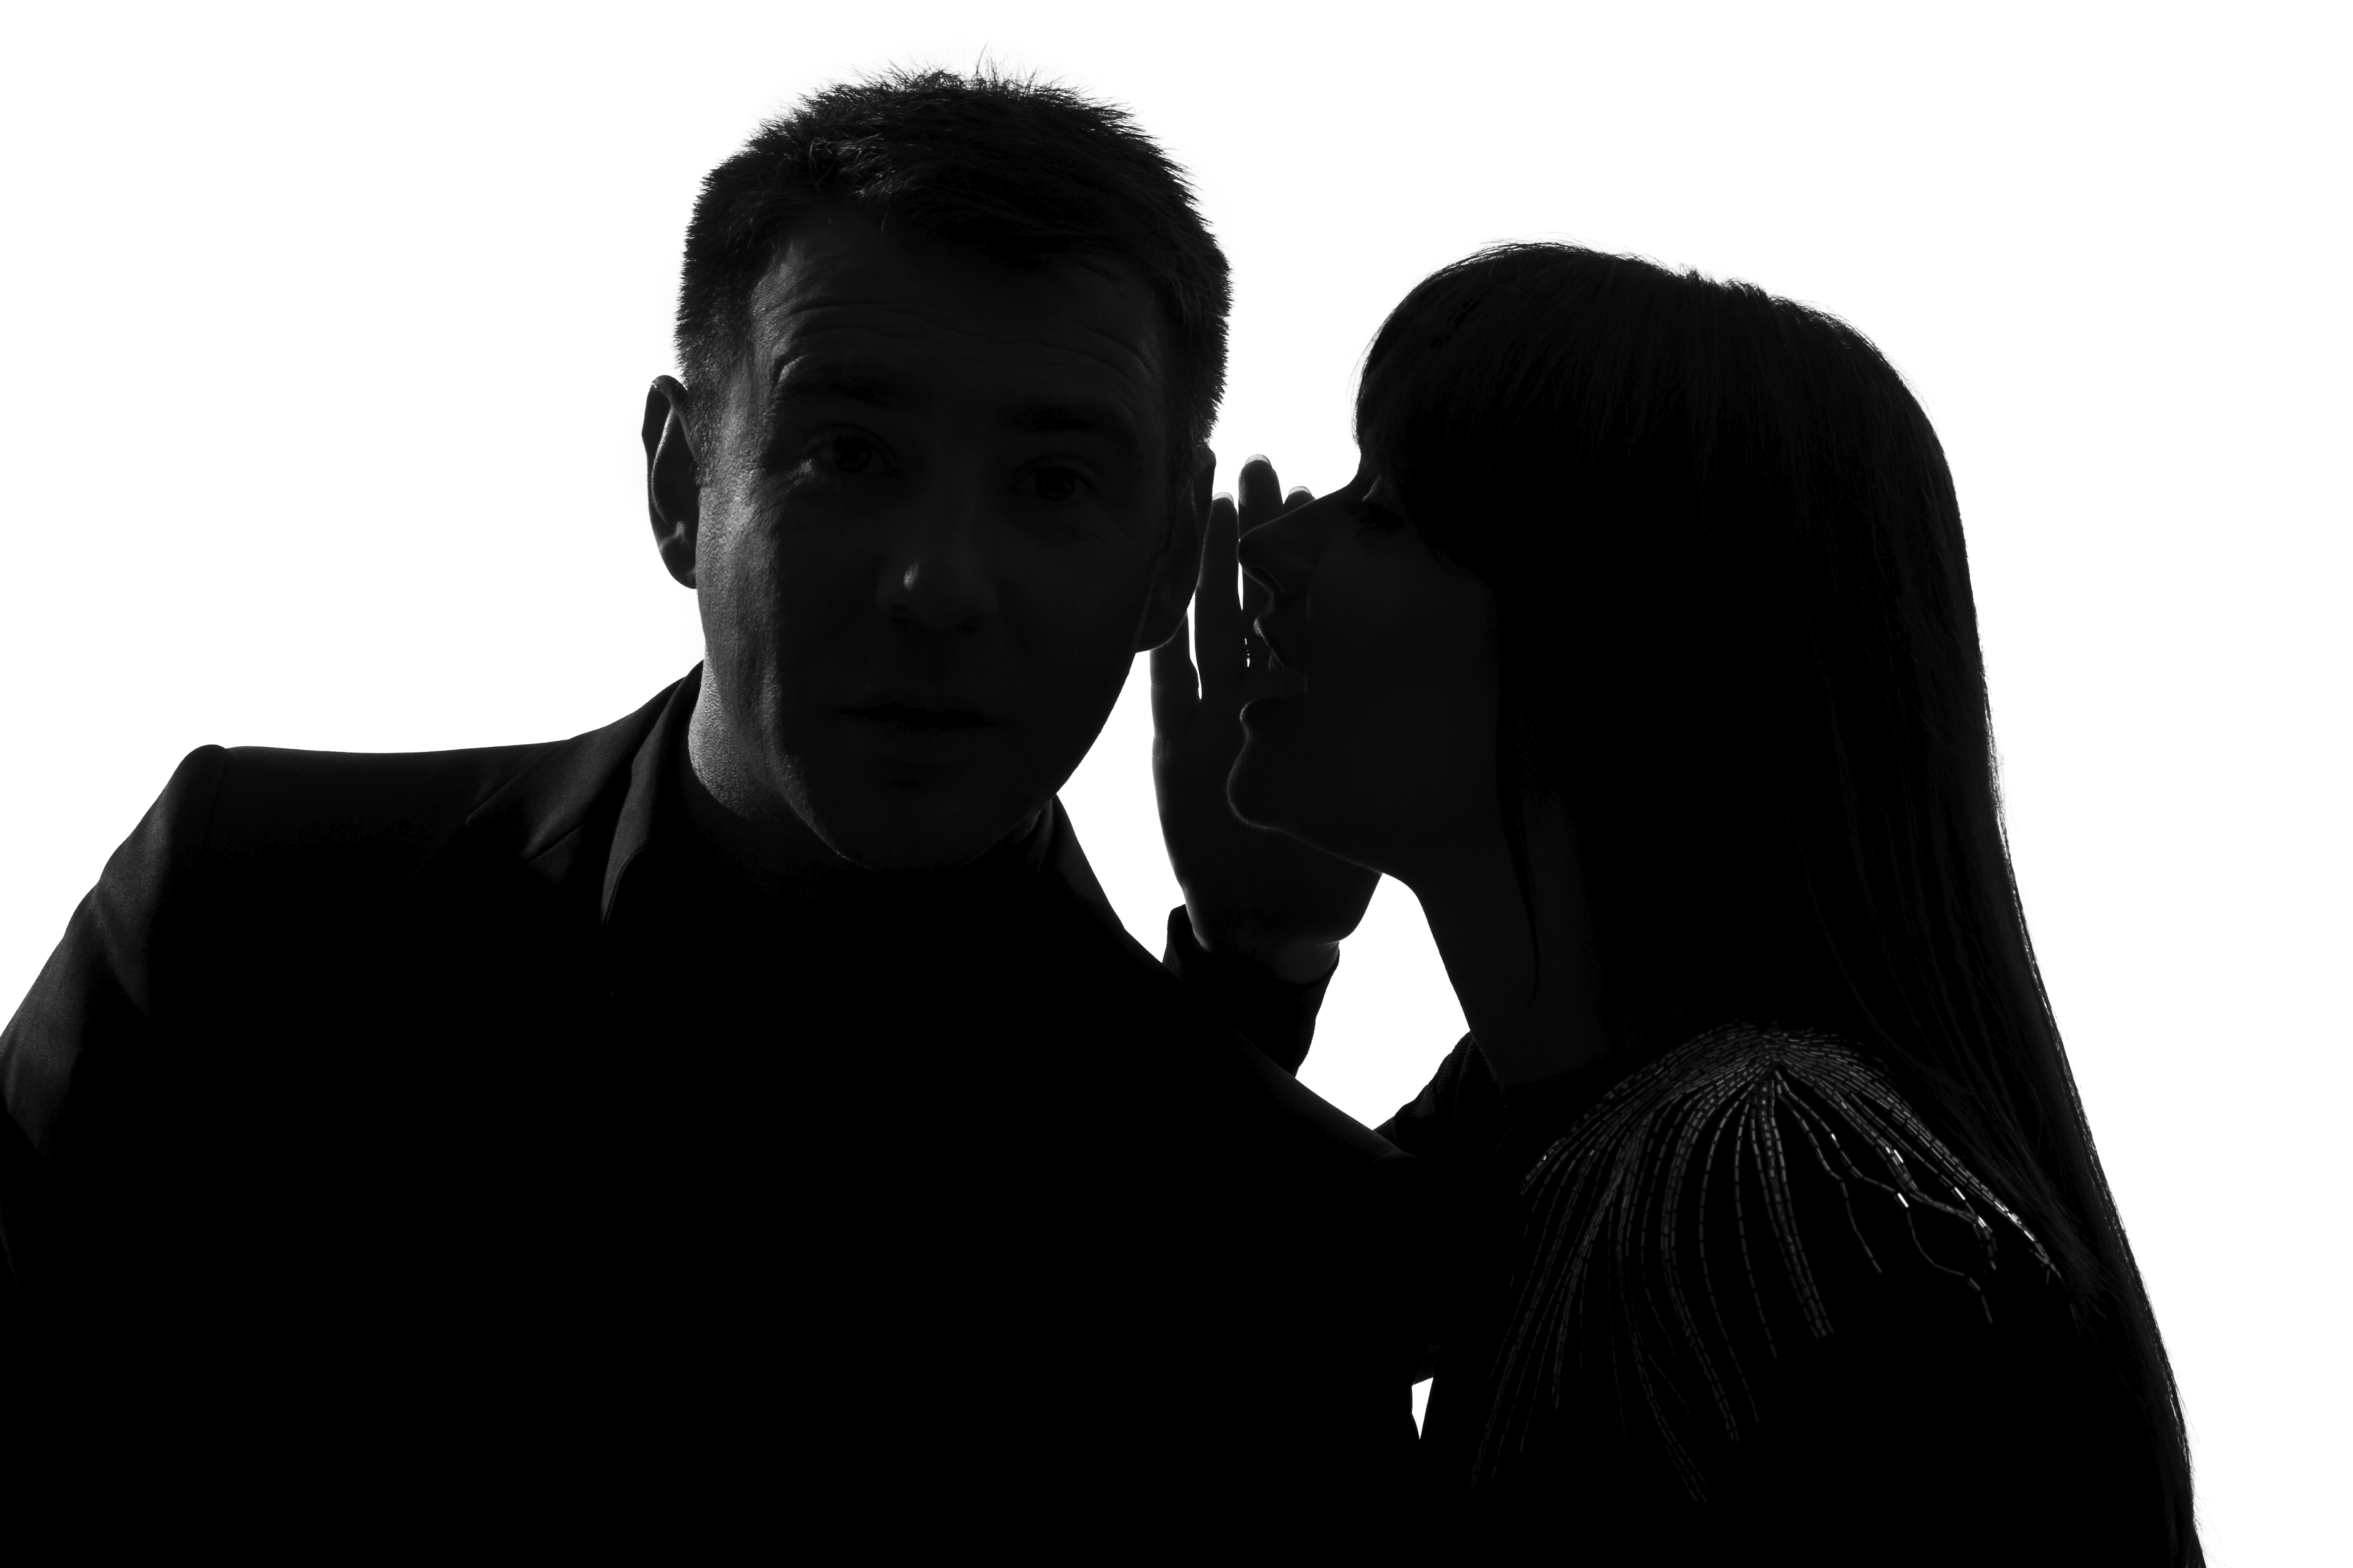 . Hdpng.com One Couple Man And Woman Whispering At Ear - Whisper, Transparent background PNG HD thumbnail